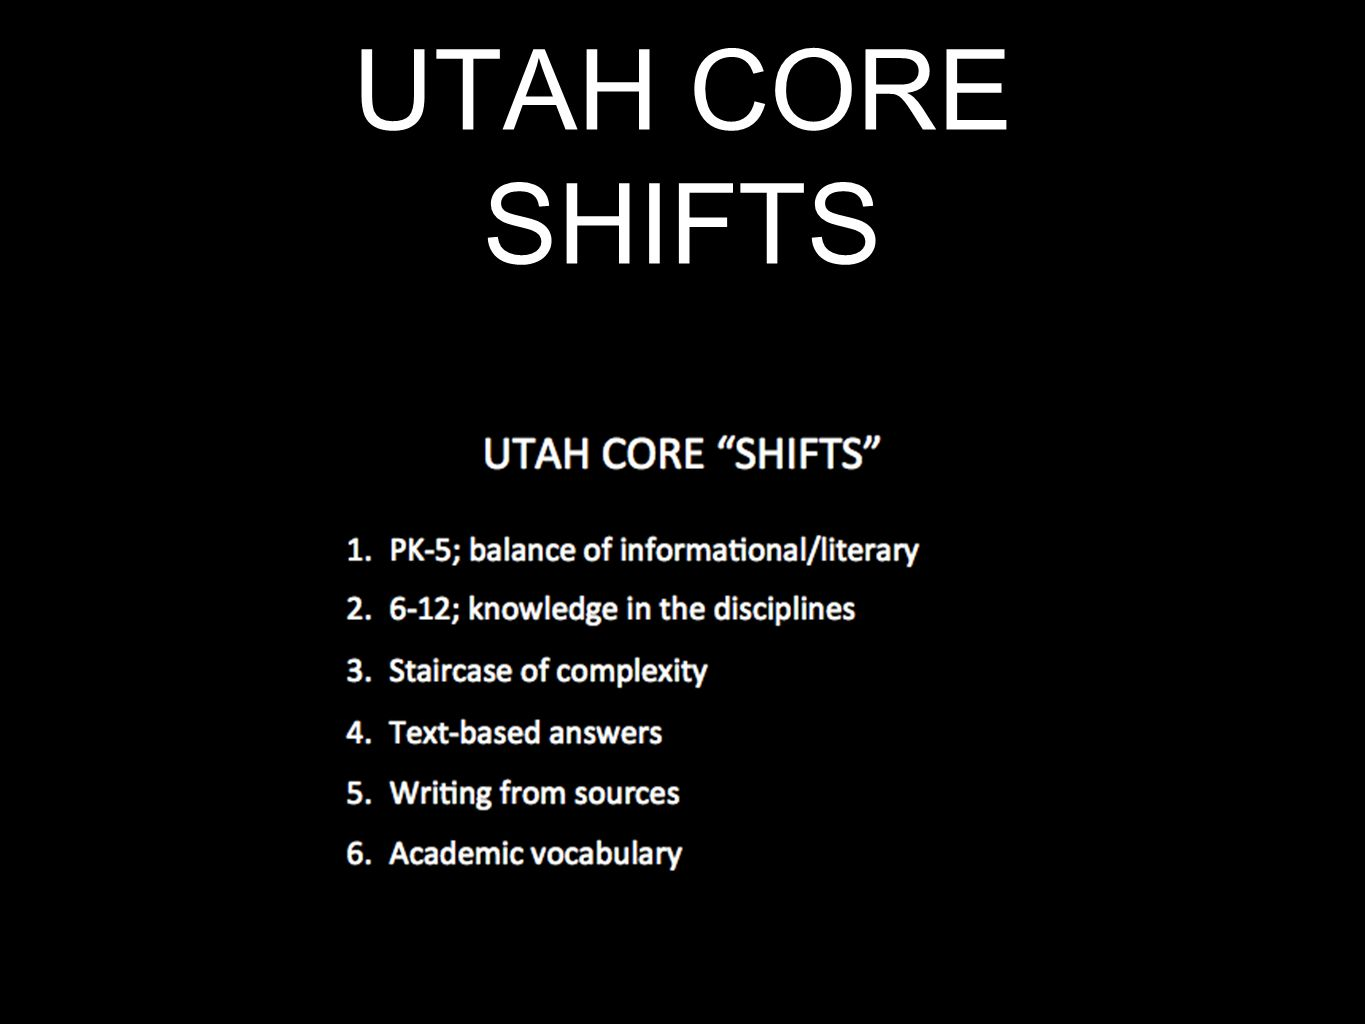 UTAH CORE SHIFTS